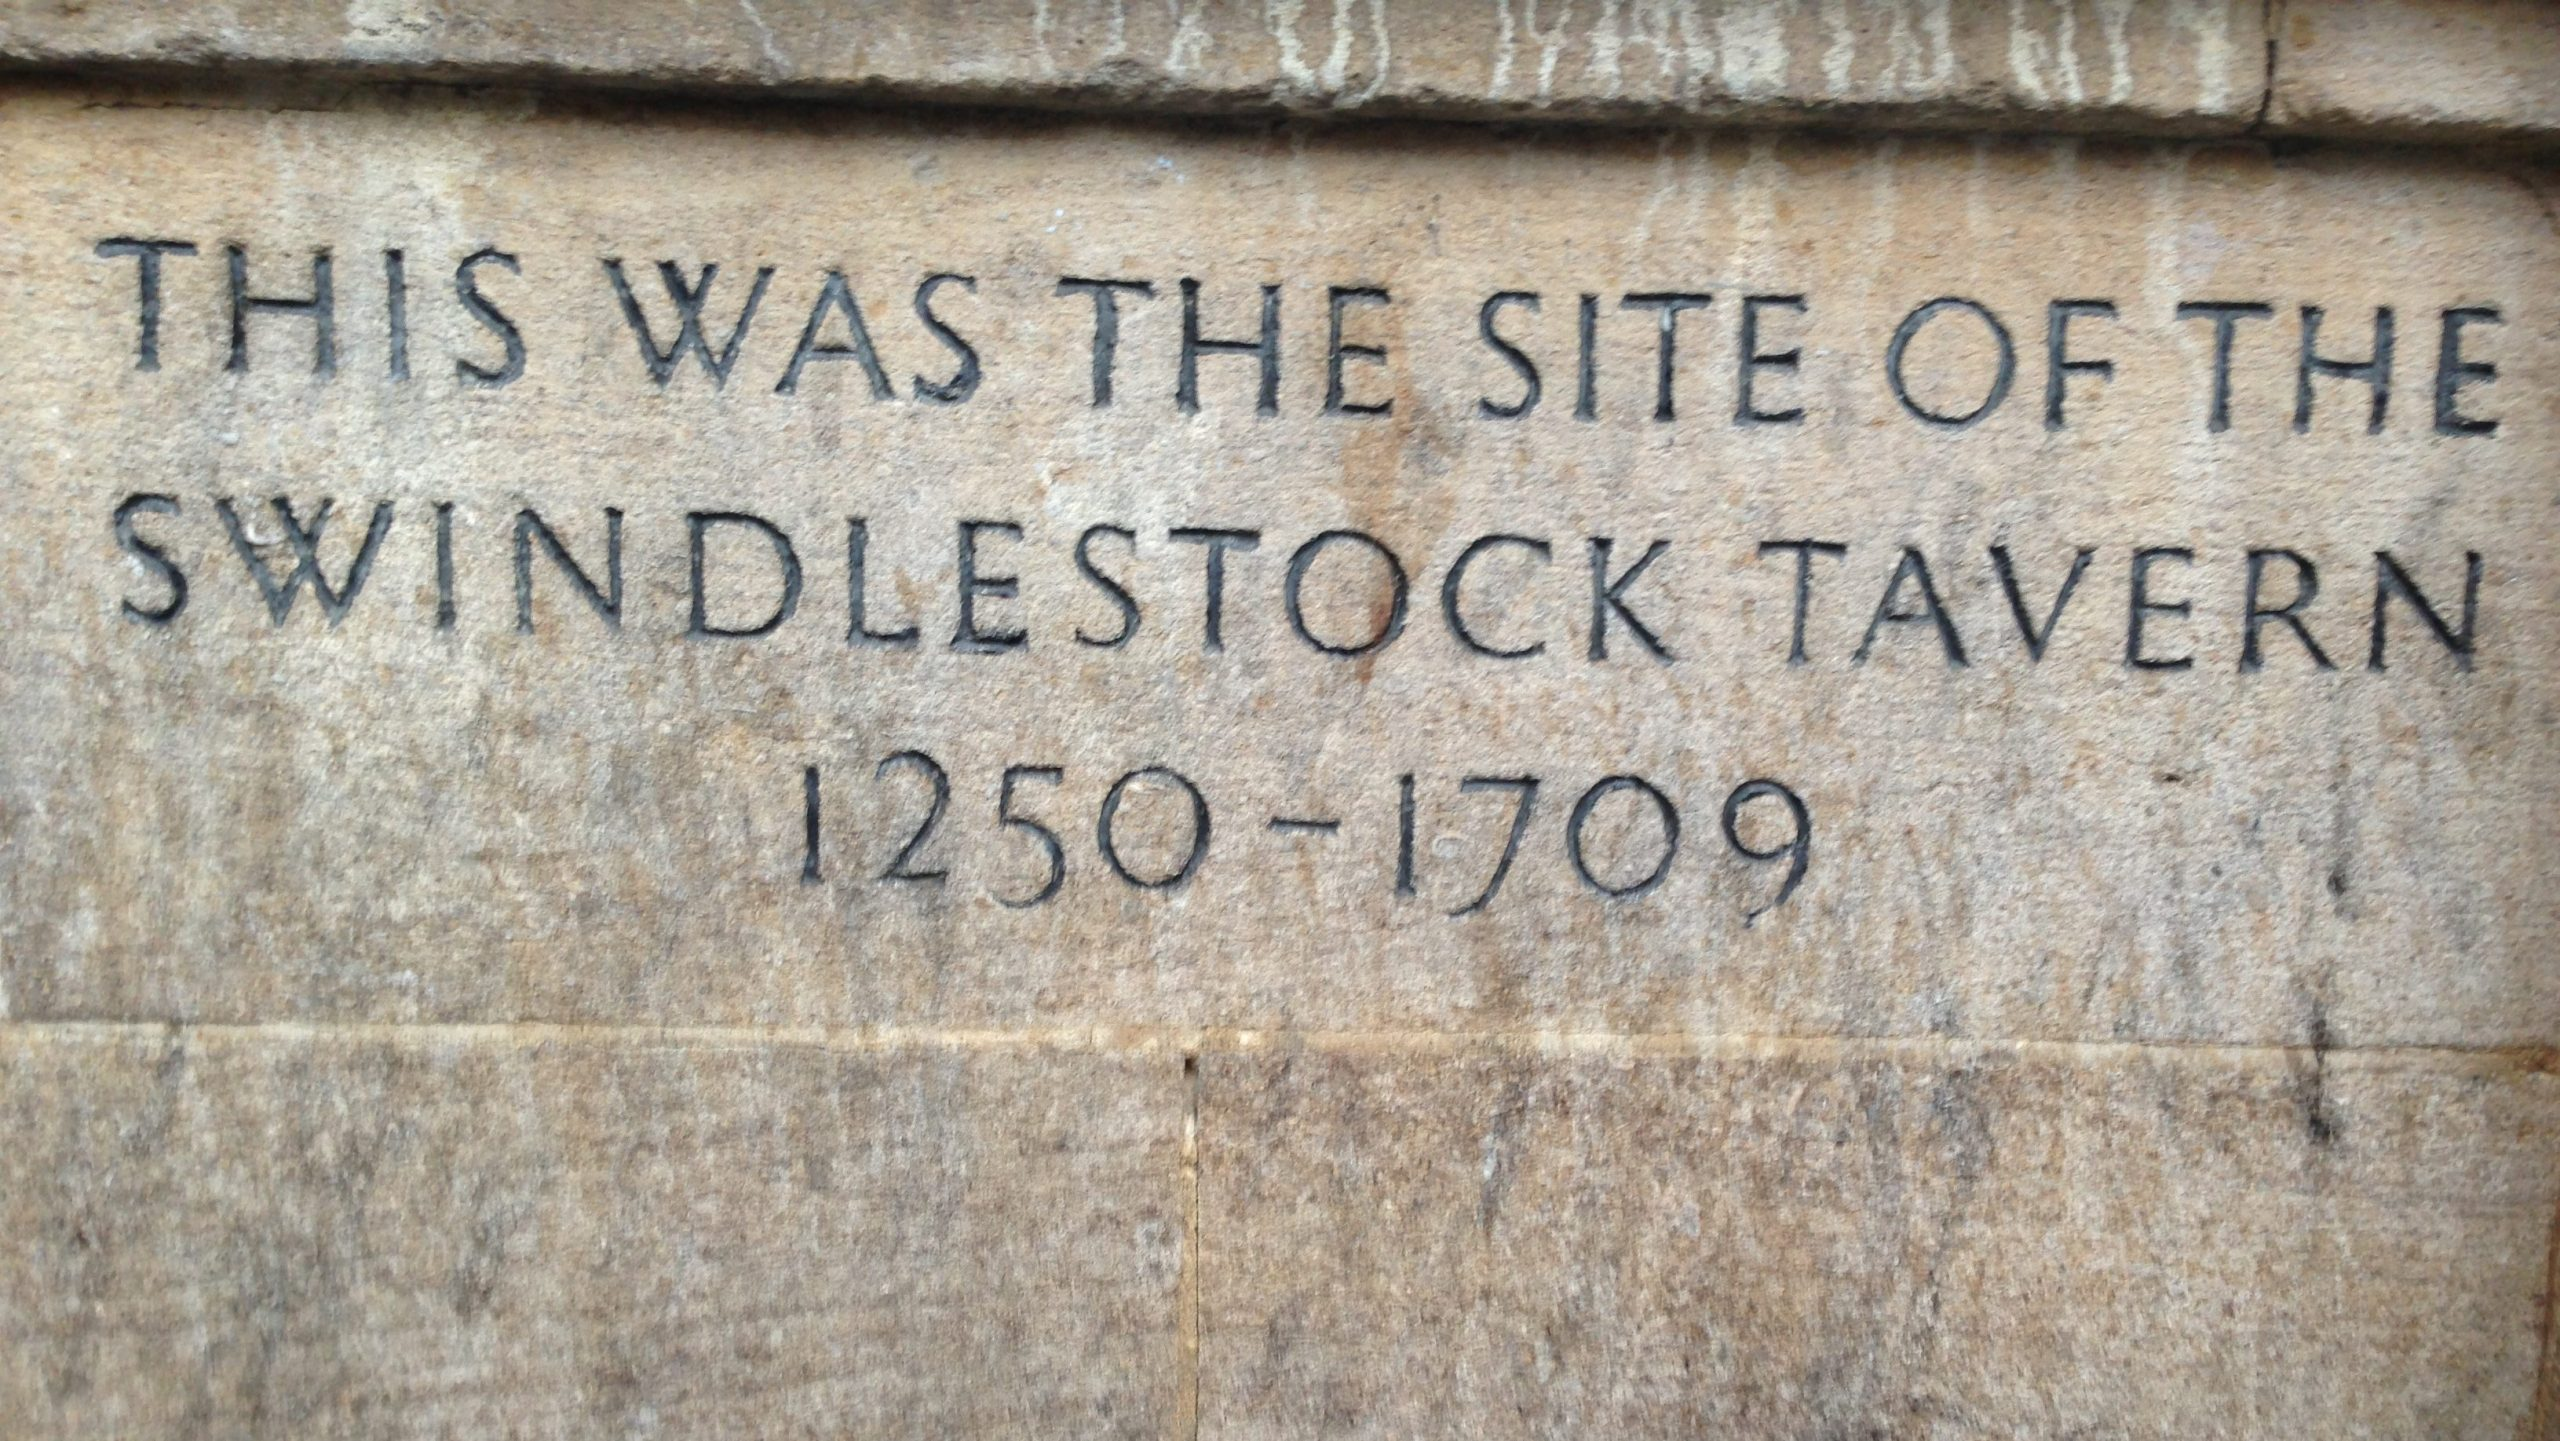 Inscription showing the site of the Swindlestock Tavern, one of Oxford's historic pubs.